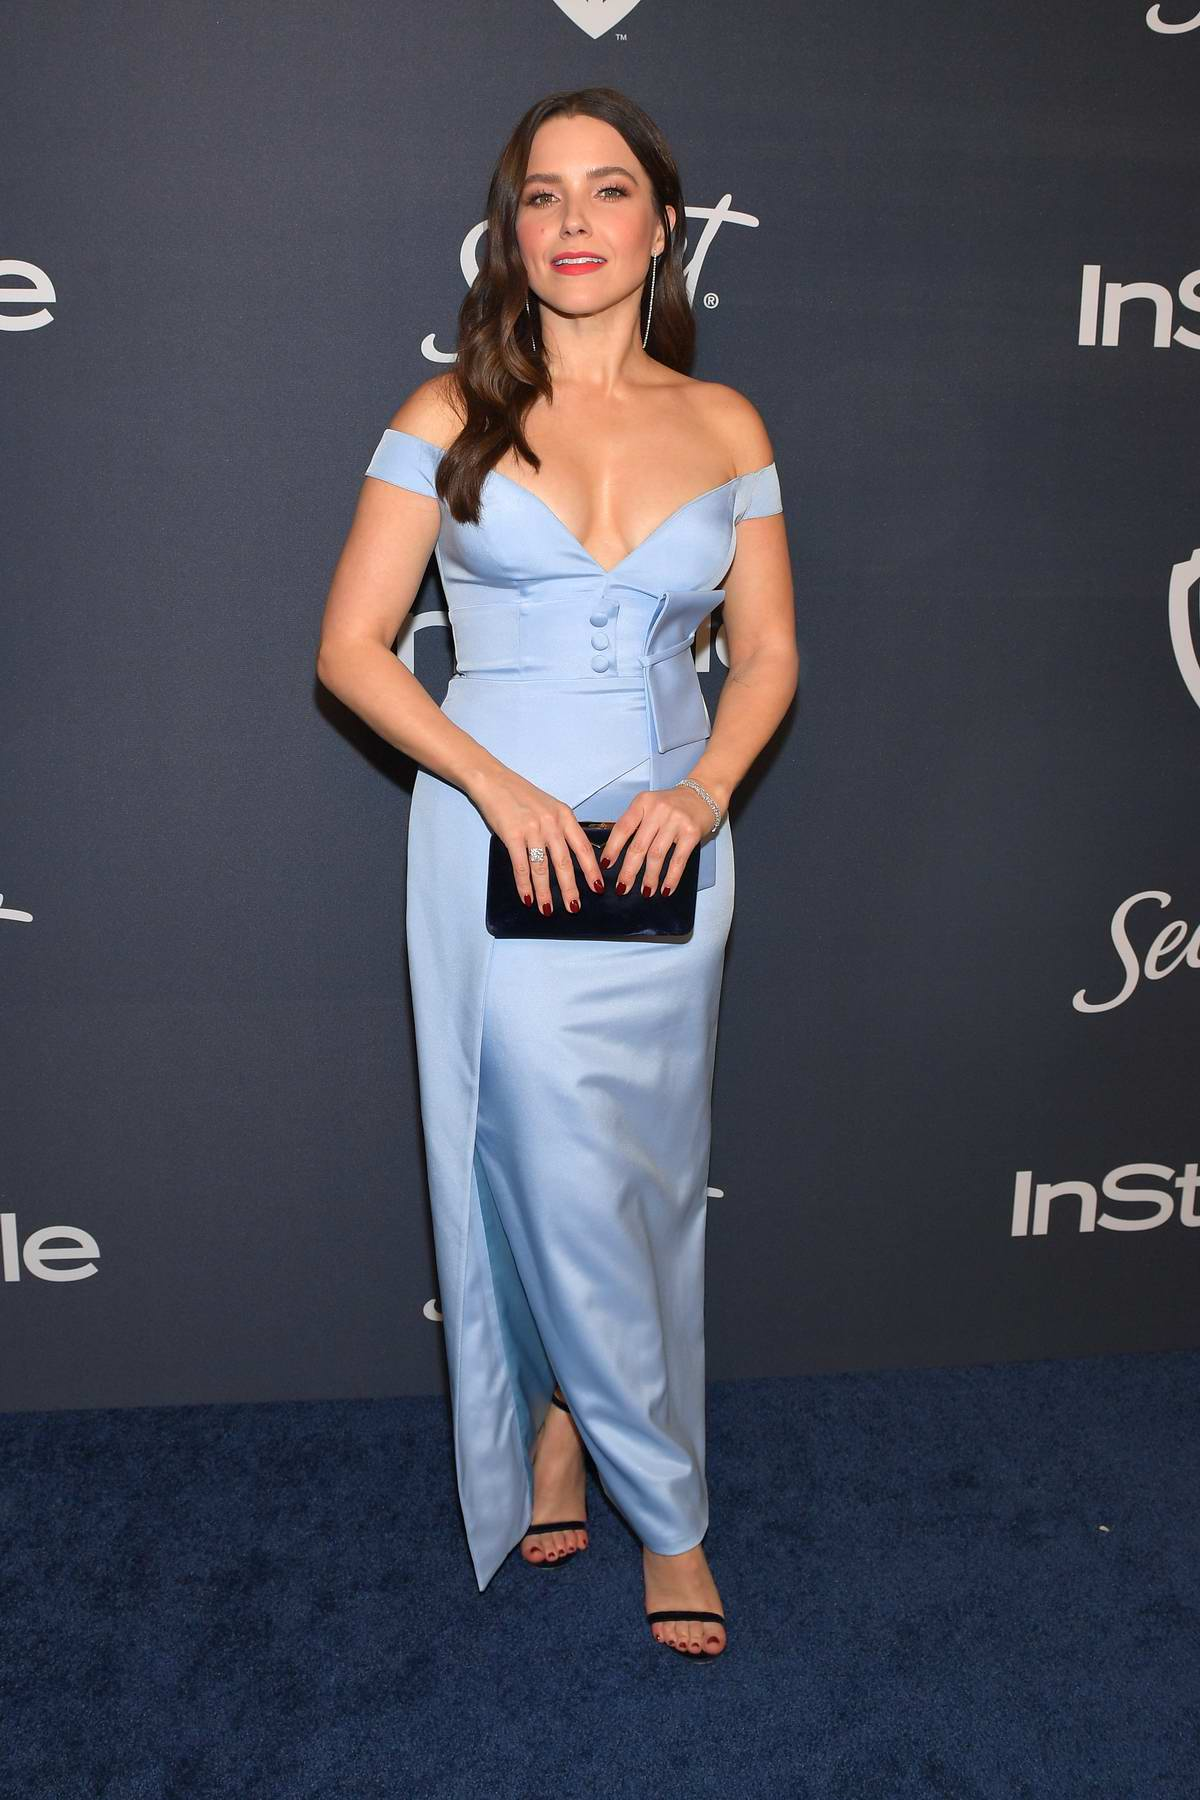 Sophia Bush attends the 21st annual Warner Bros and InStyle Golden Globe After-Party in Beverly Hills, California